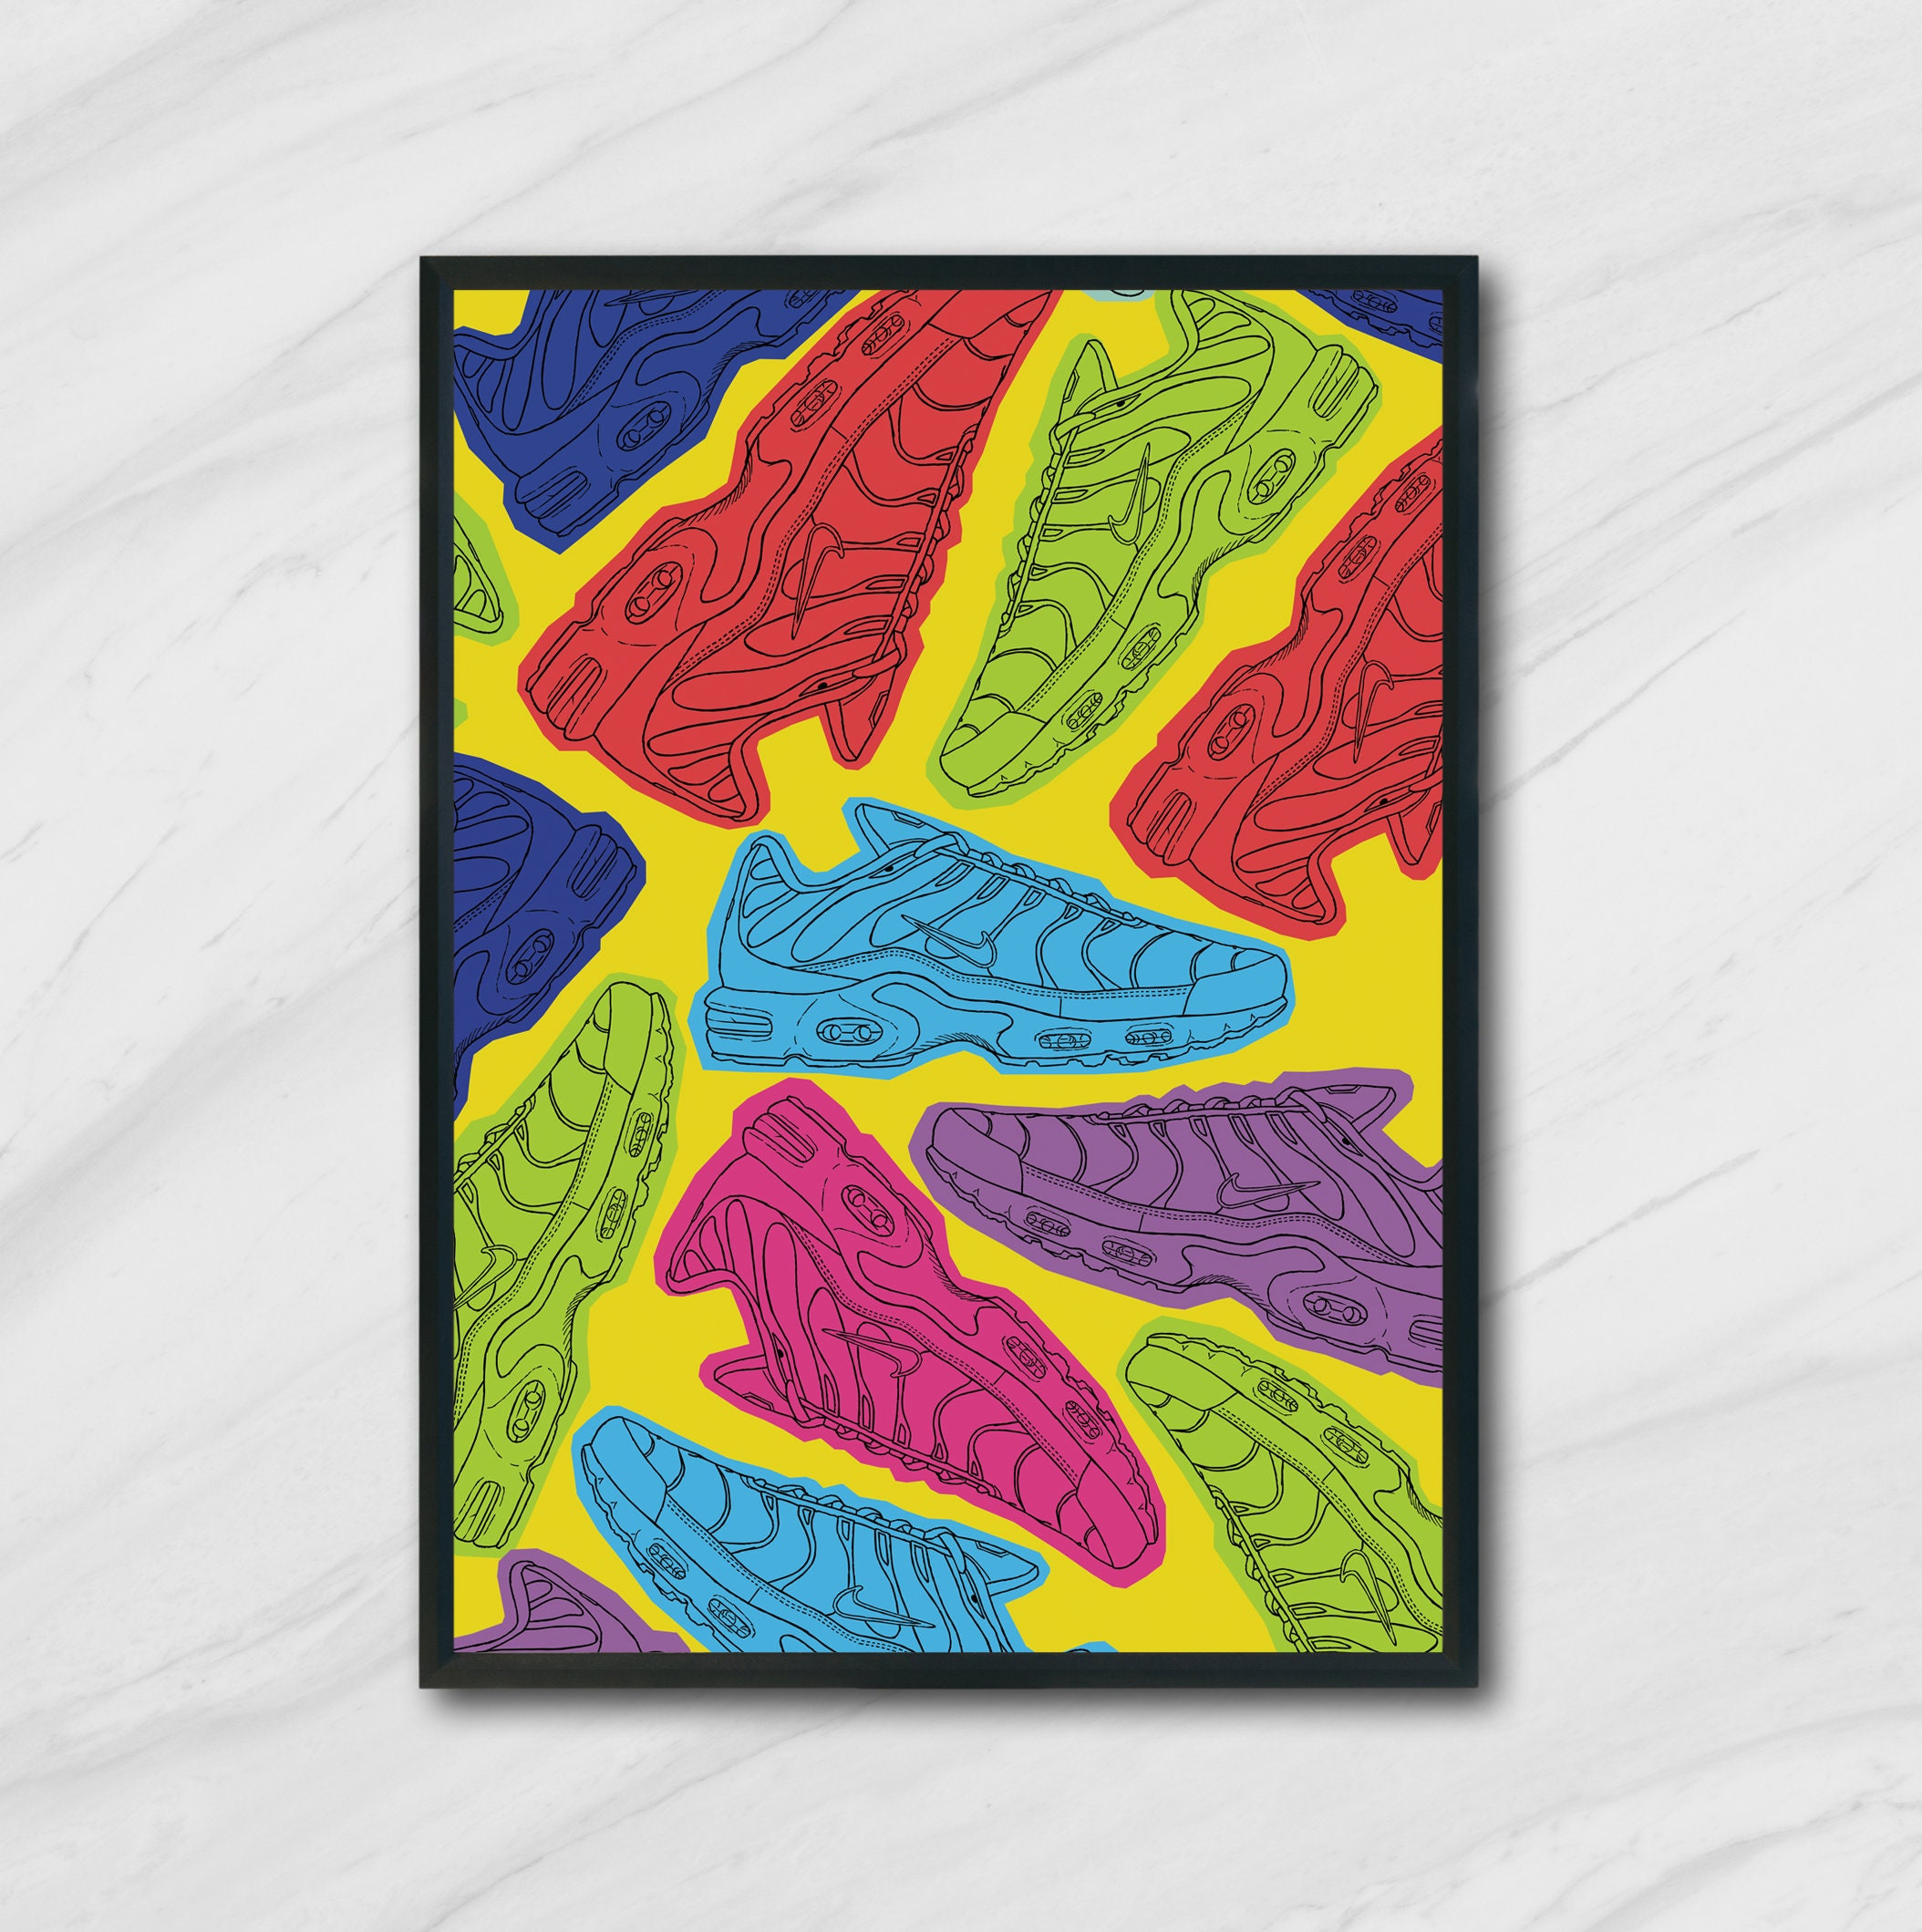 Nike TN Sneakers Pop Art Print Poster Illustration A4 or A3 | Signed by Artist & FREE GIFT